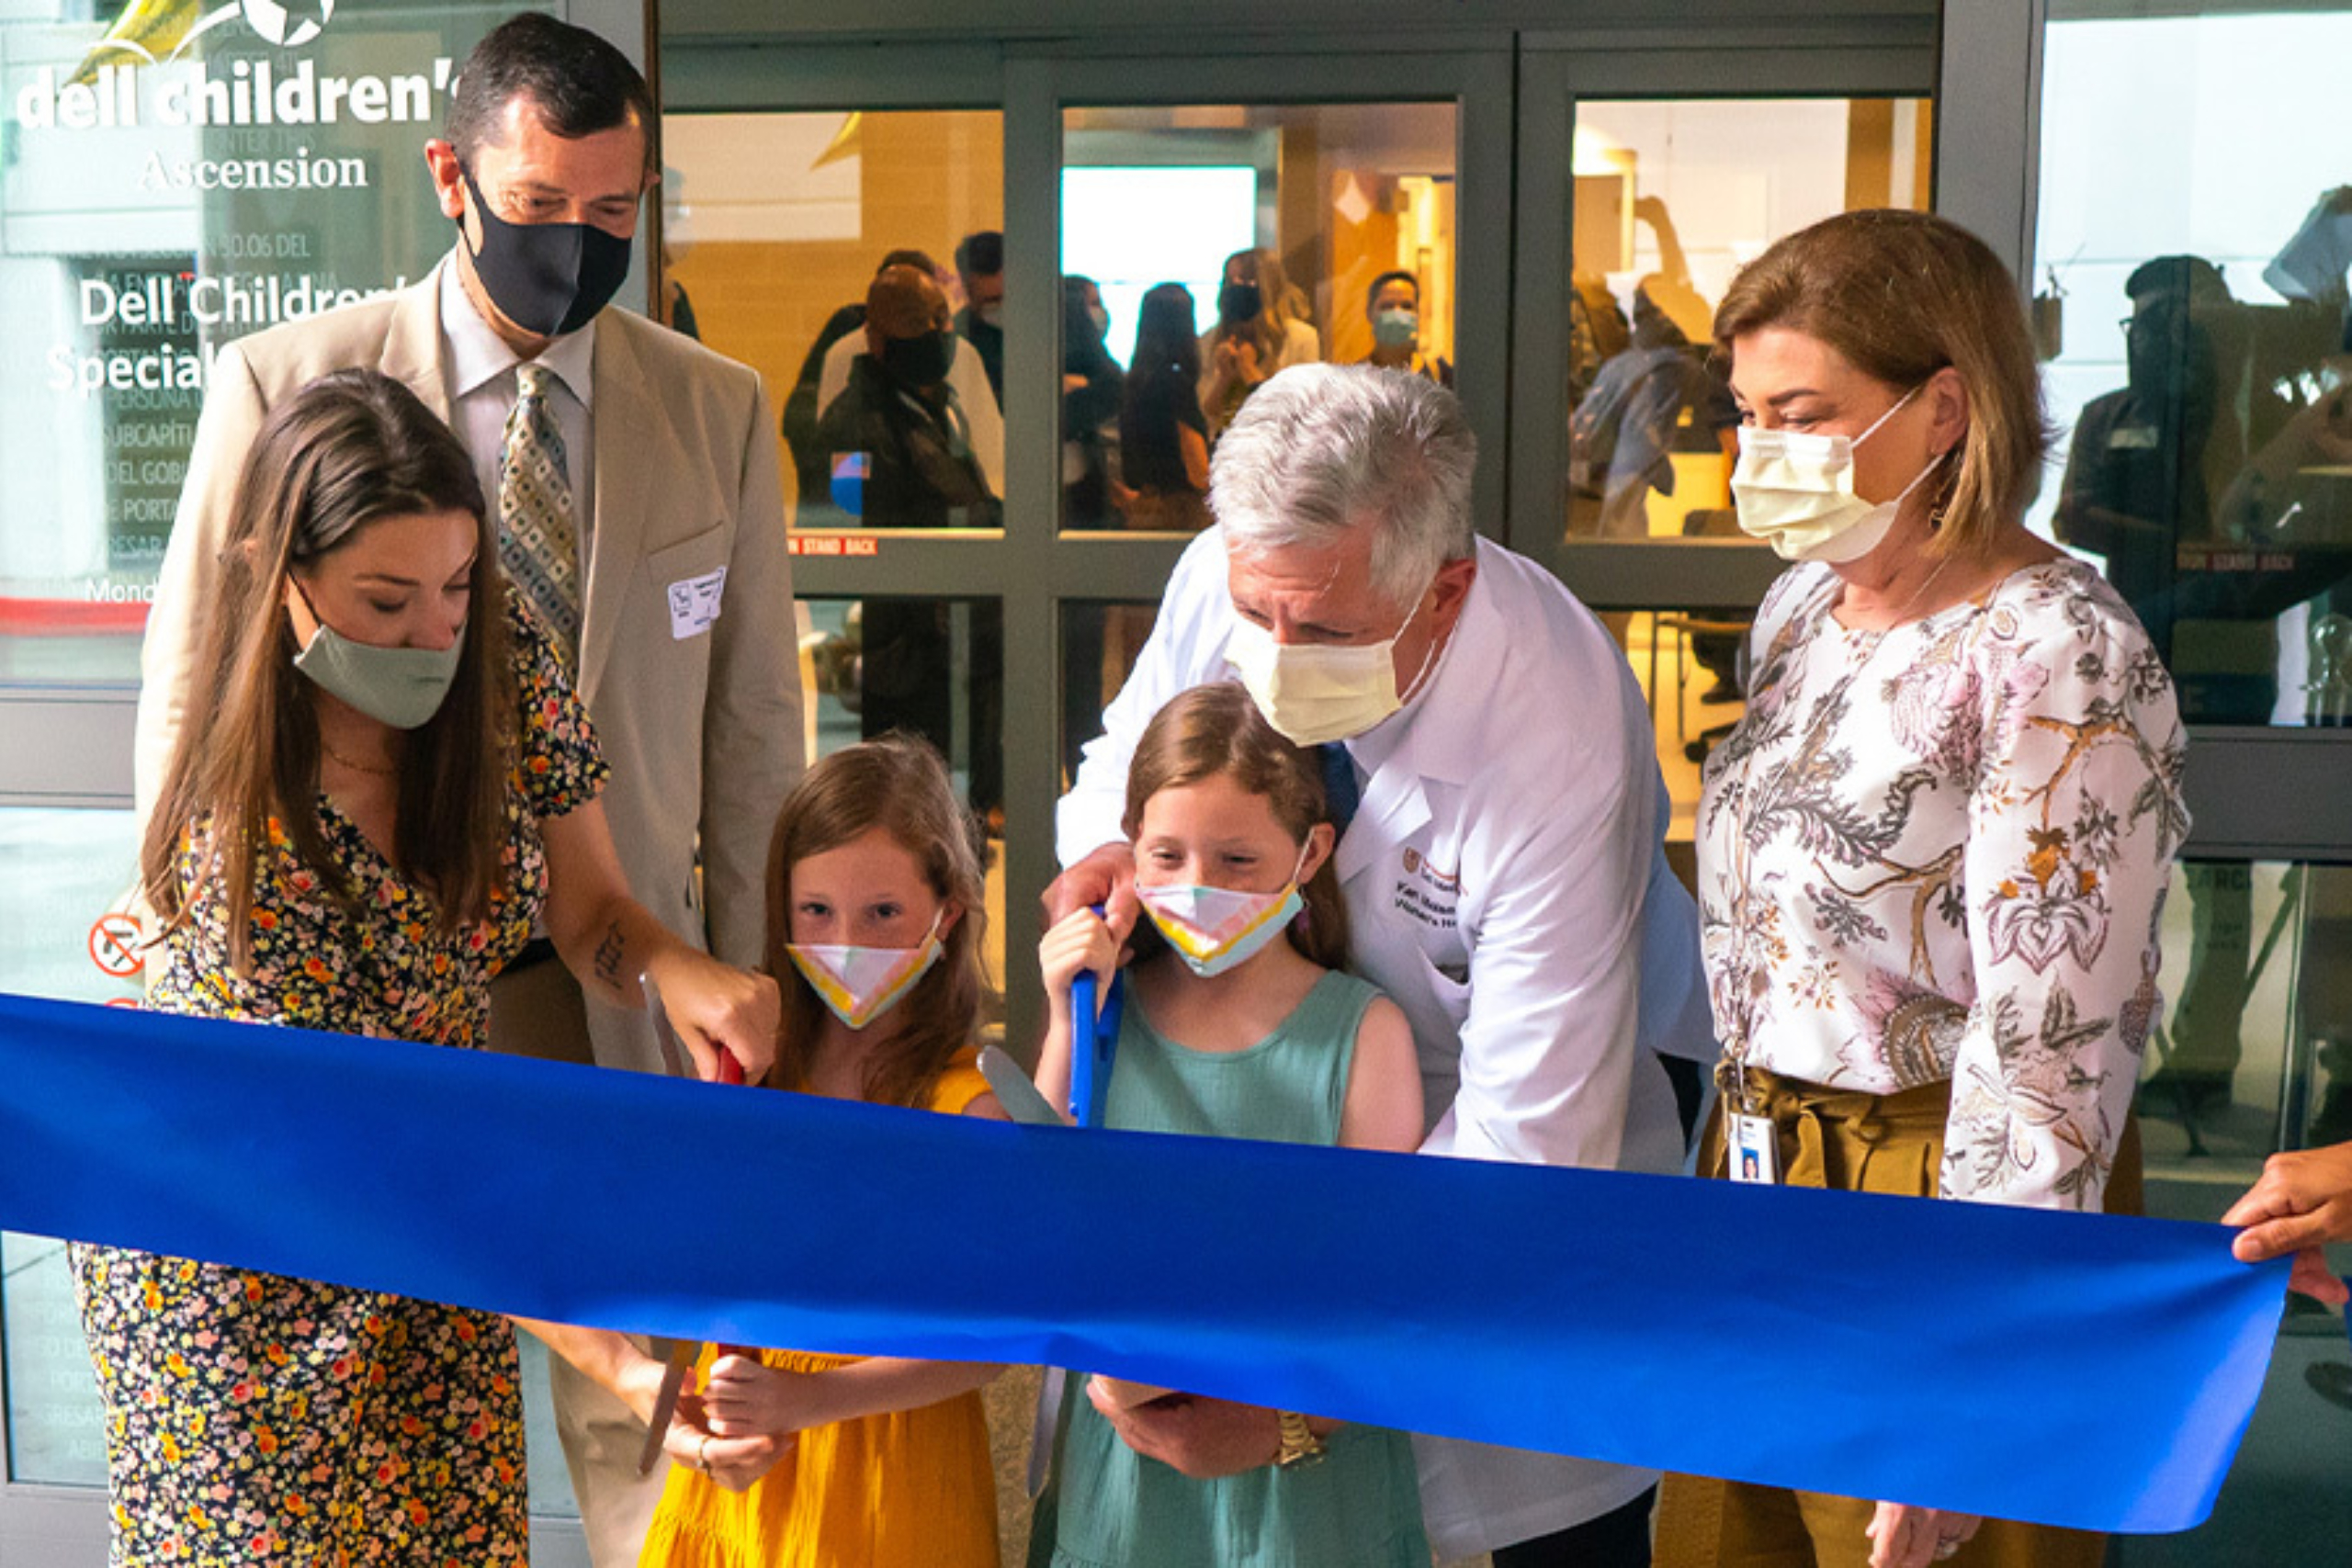 Dr. Kenneth Moise, Jr. is joined by former patient Amber Cessac and her twin daughters, Noelle and Edwin, to cut the ribbon at the opening ceremony for theComprehensive Fetal Care Center.